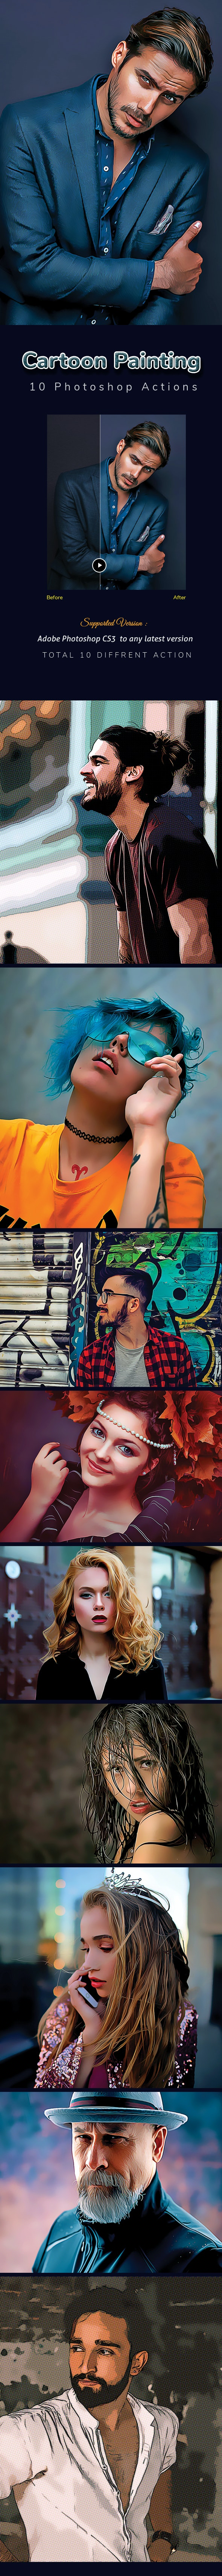 10 Oil Painting Photoshop Effects - Photo Effects Actions